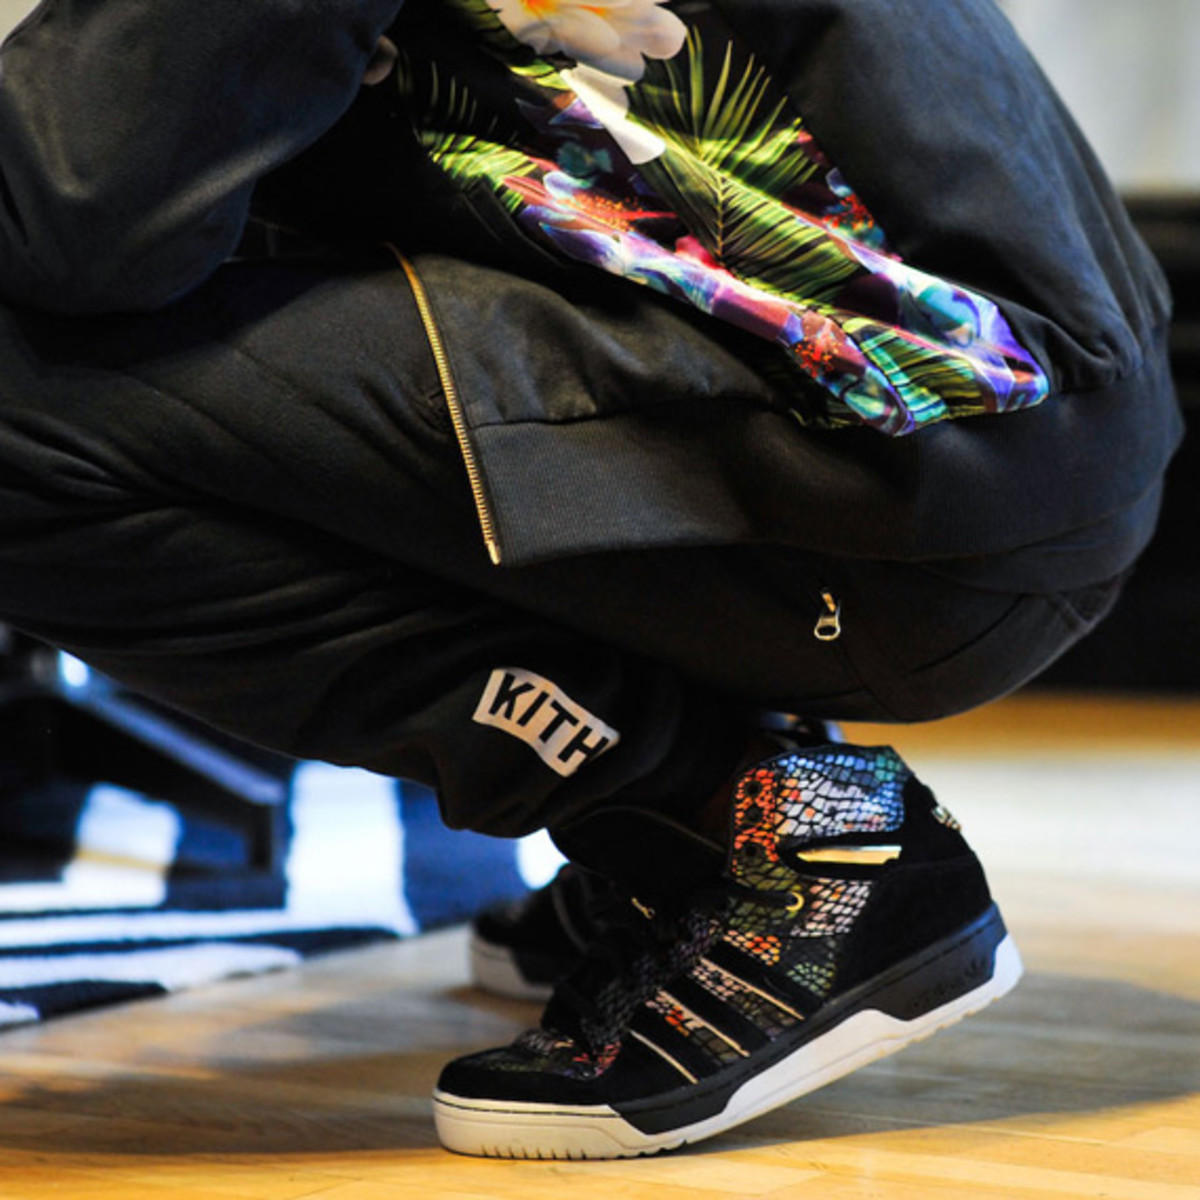 big-sean-adidas-originals-metro-attitude-collection-lookbook-by-kith-01